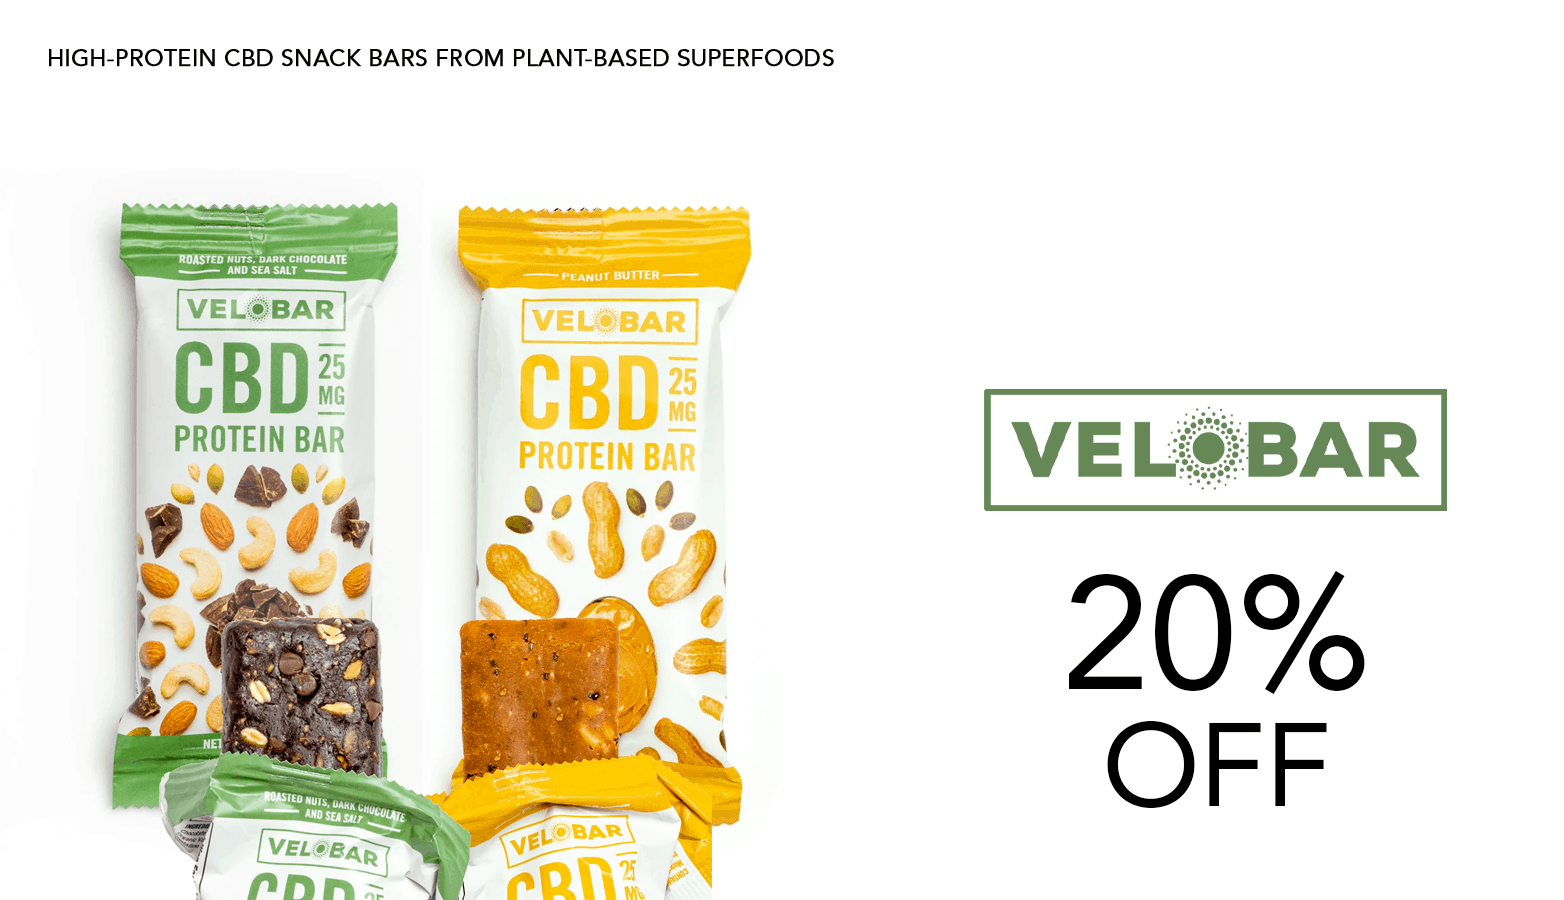 Velobar CBD Coupon Code 20 Percent Off Website